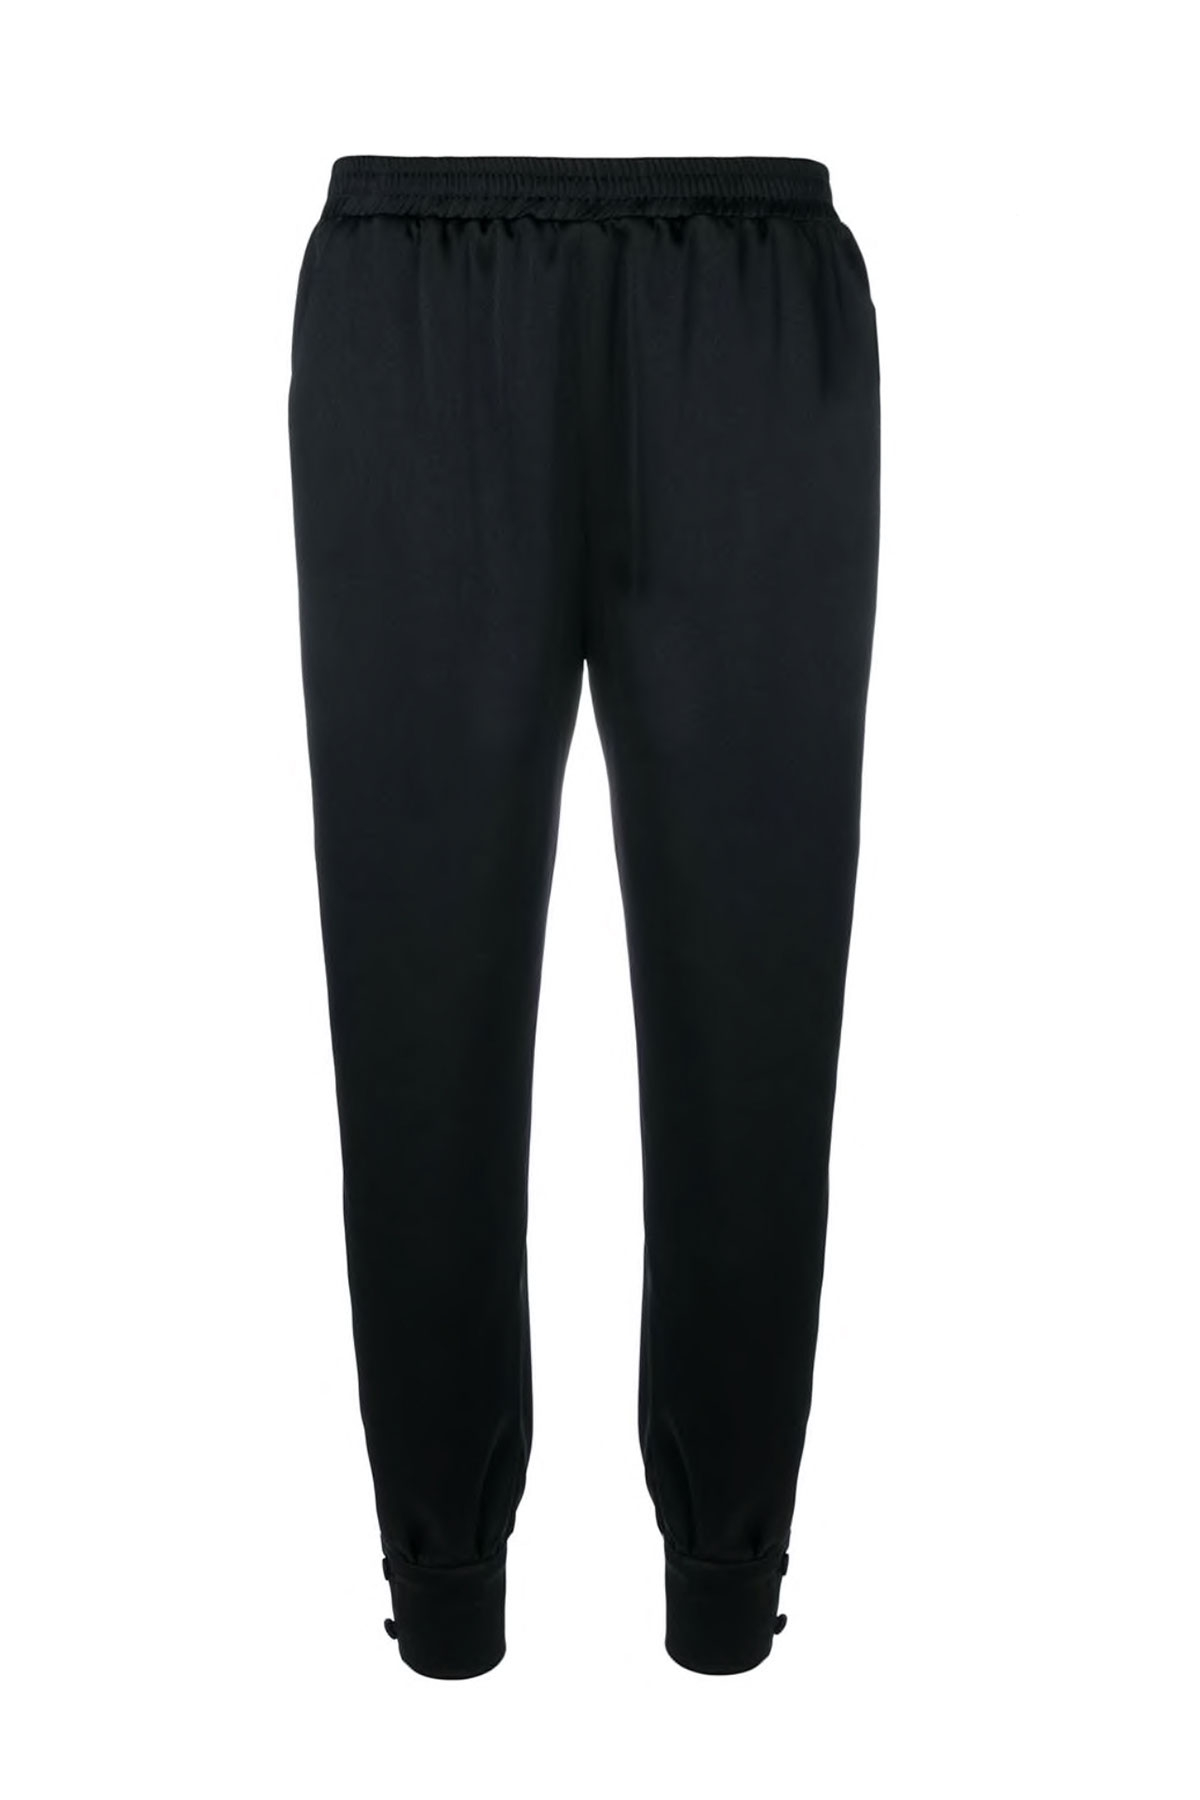 BLACK PANTS WITH TWO BUTTONS CUFF